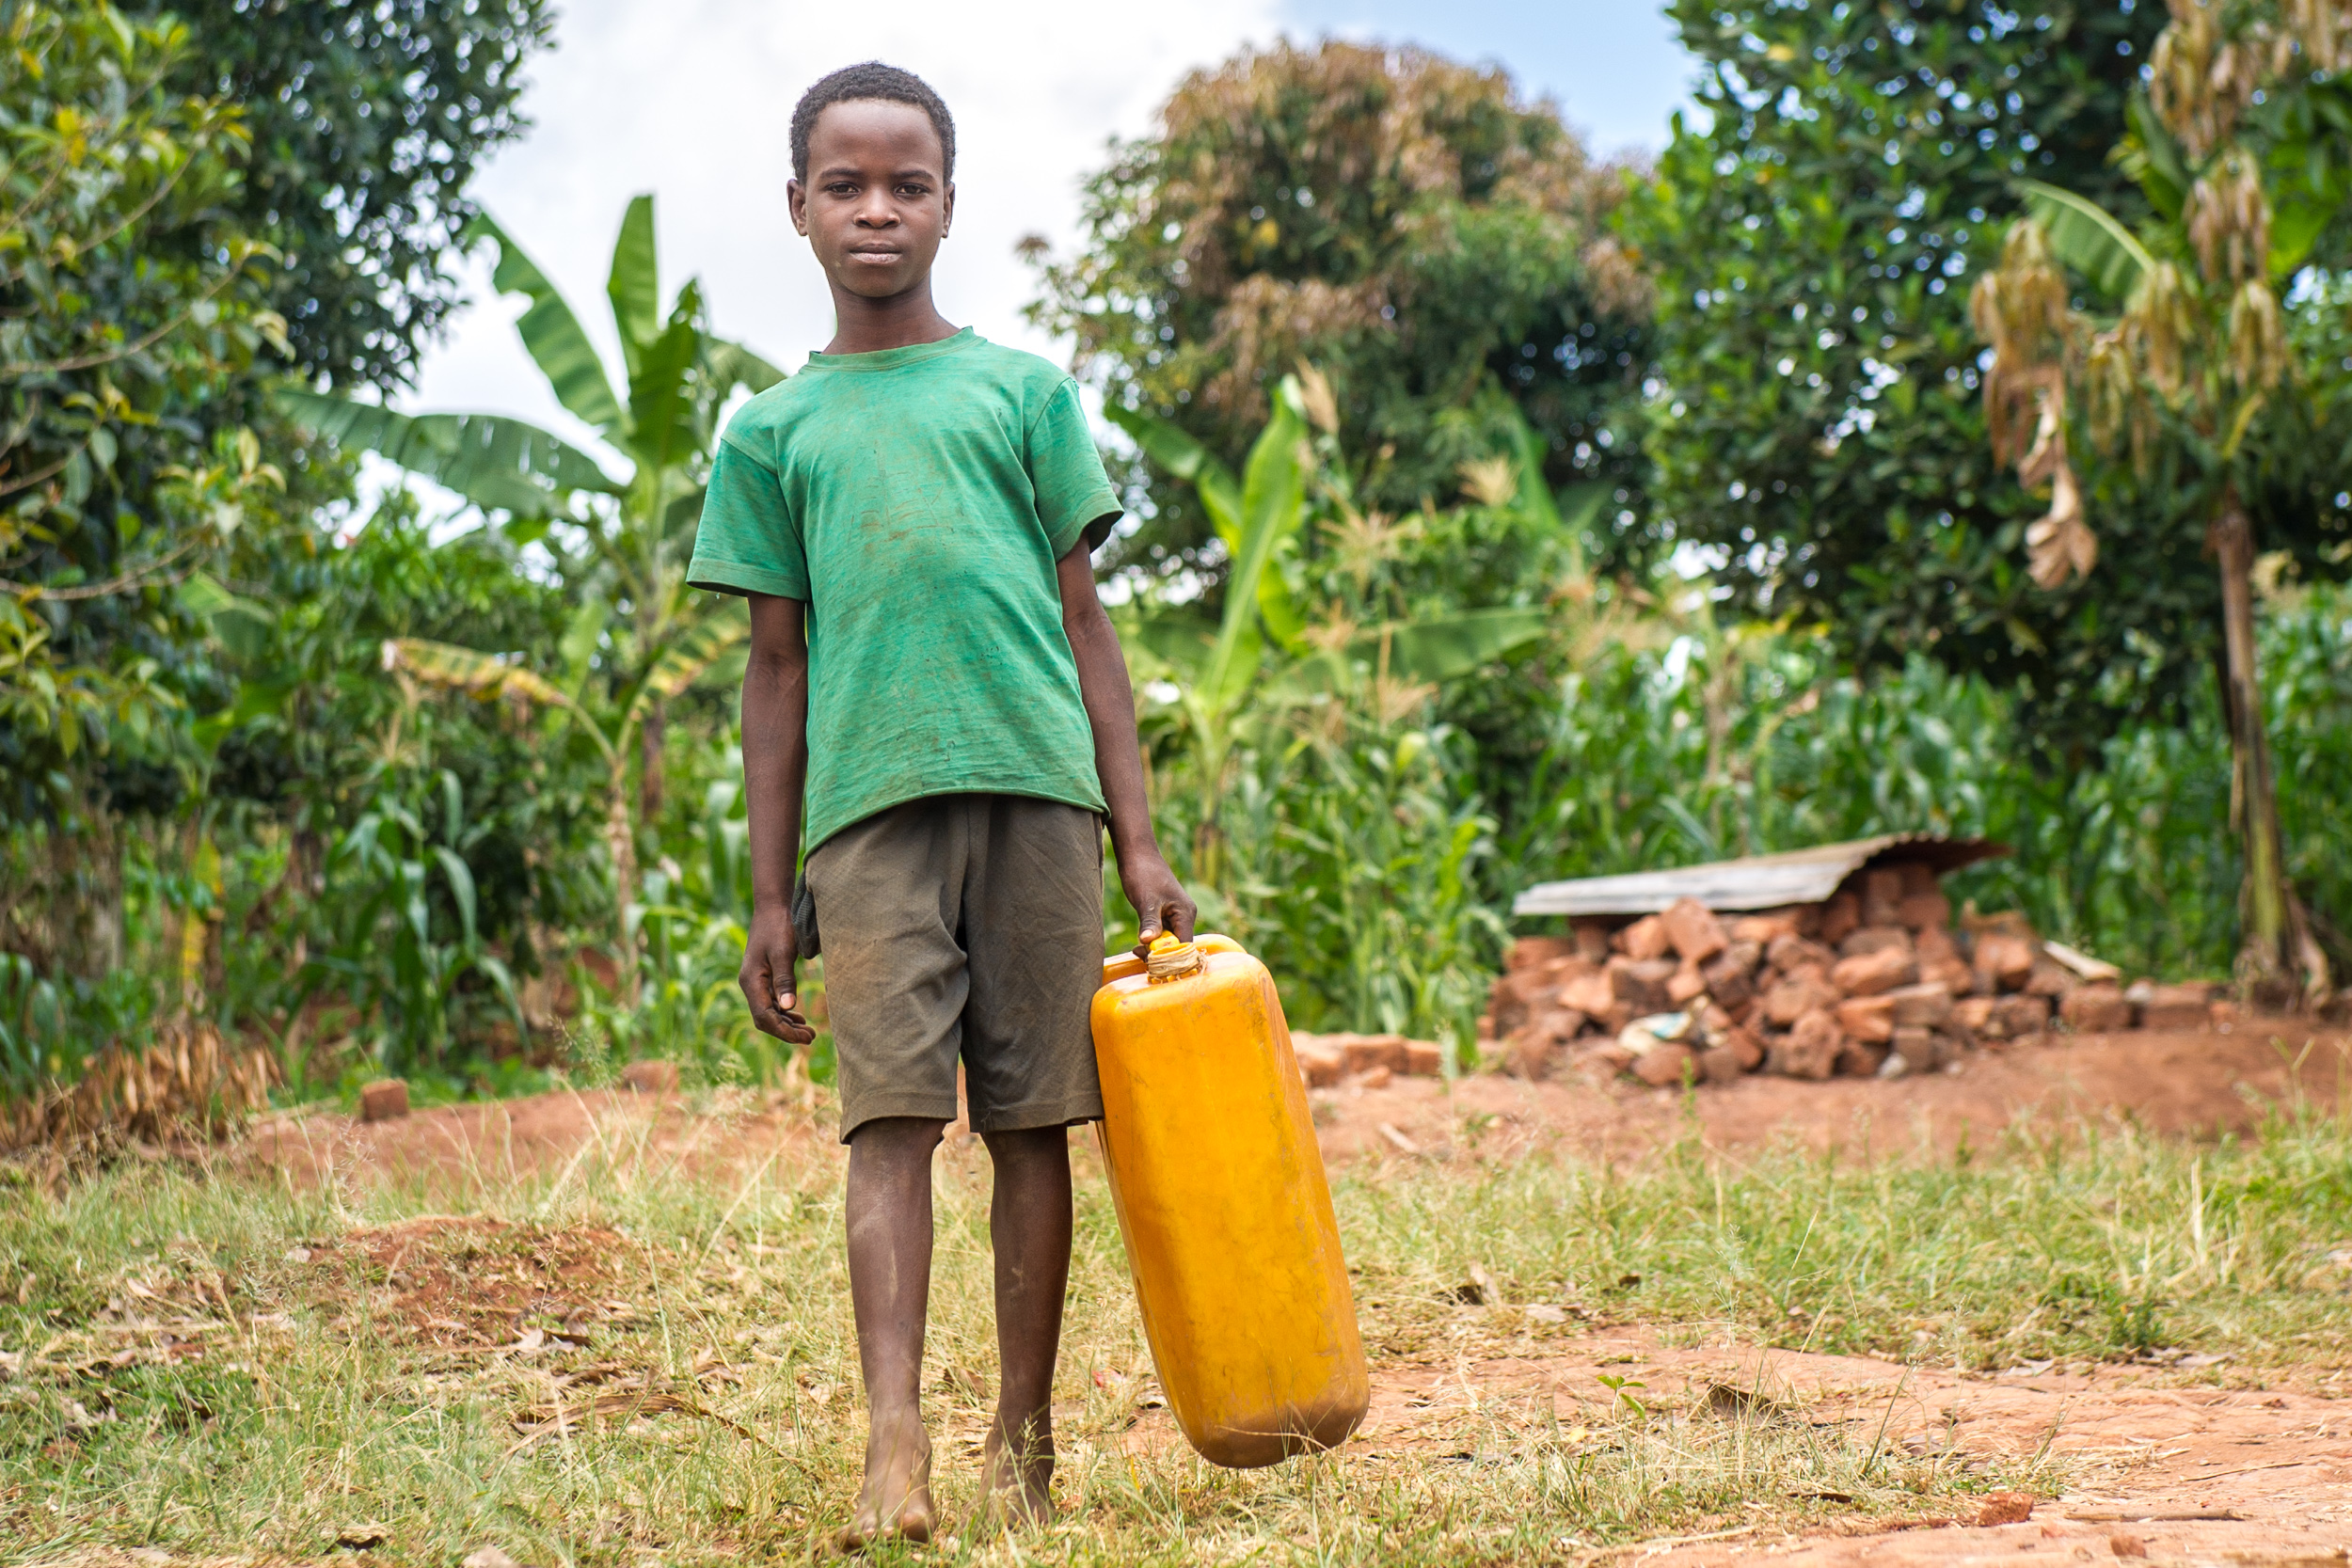 Brian, Jane's grandson, makes the hour-long round trip trek to the well every day. Even though the well's water is unsafe to drink, the family has no other options. Jane became the caretaker for her two grandchildren when their parents died.